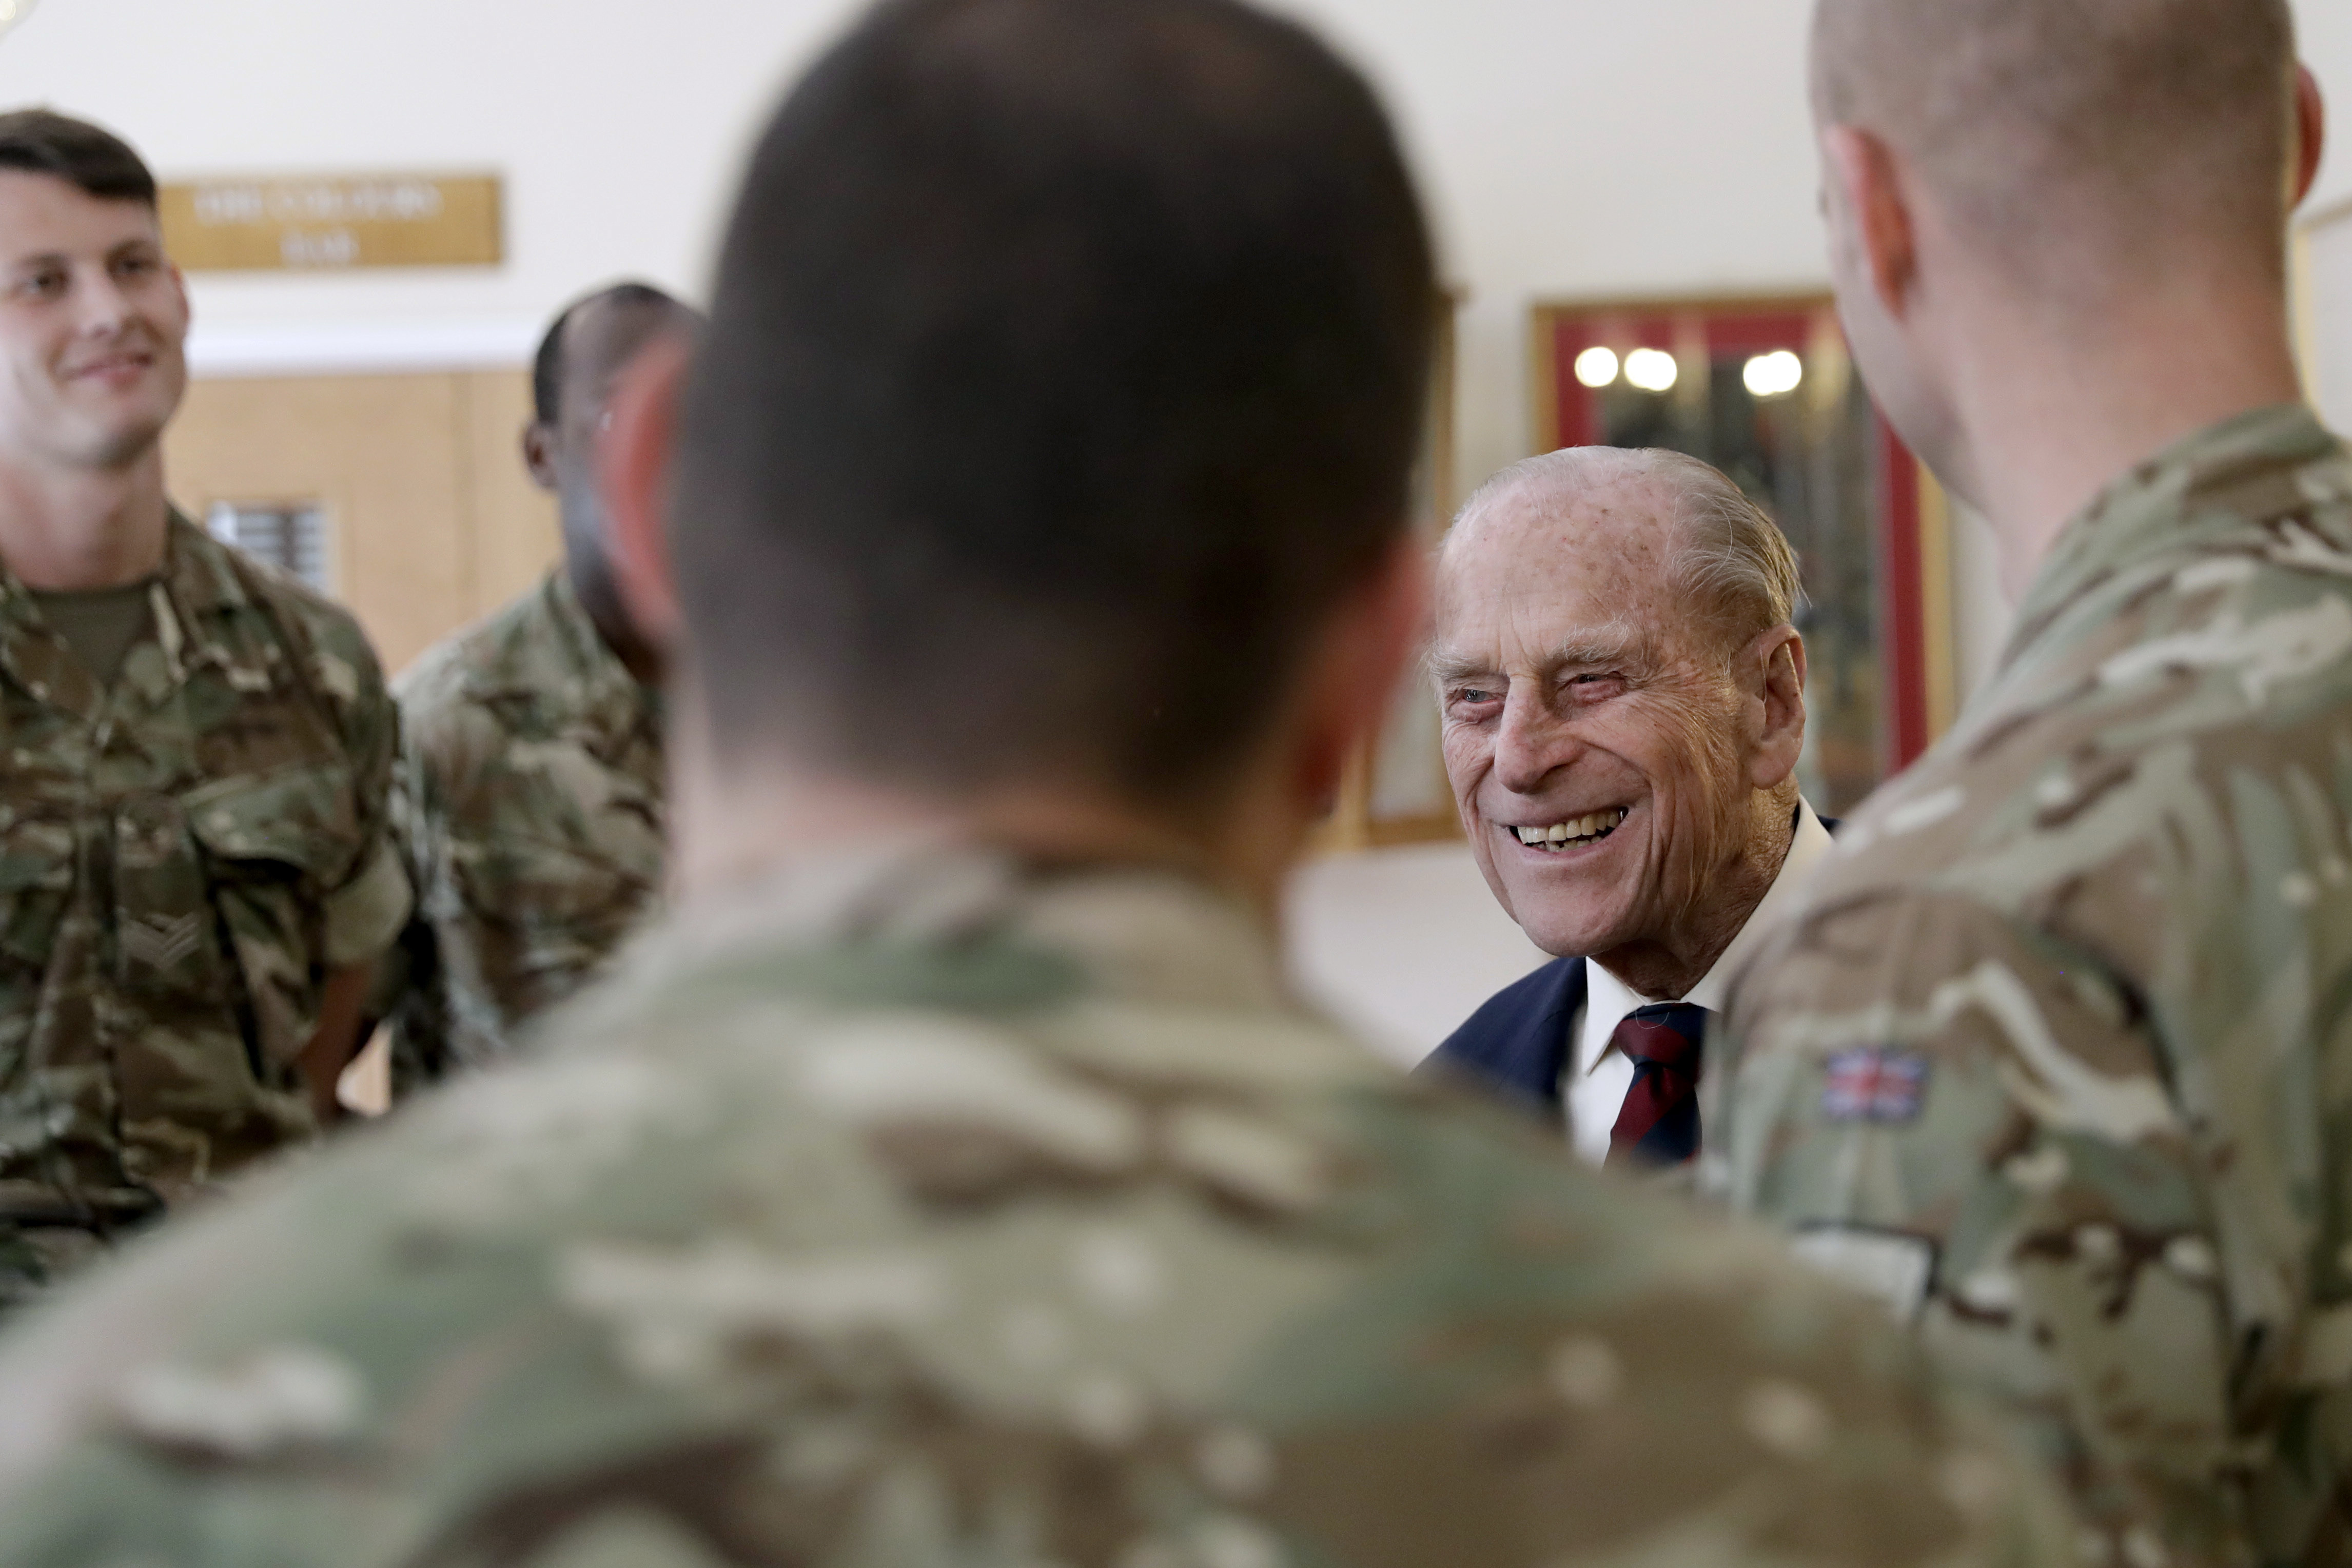 The Duke of Edinburgh meets soldiers in the Sergeants' Mess